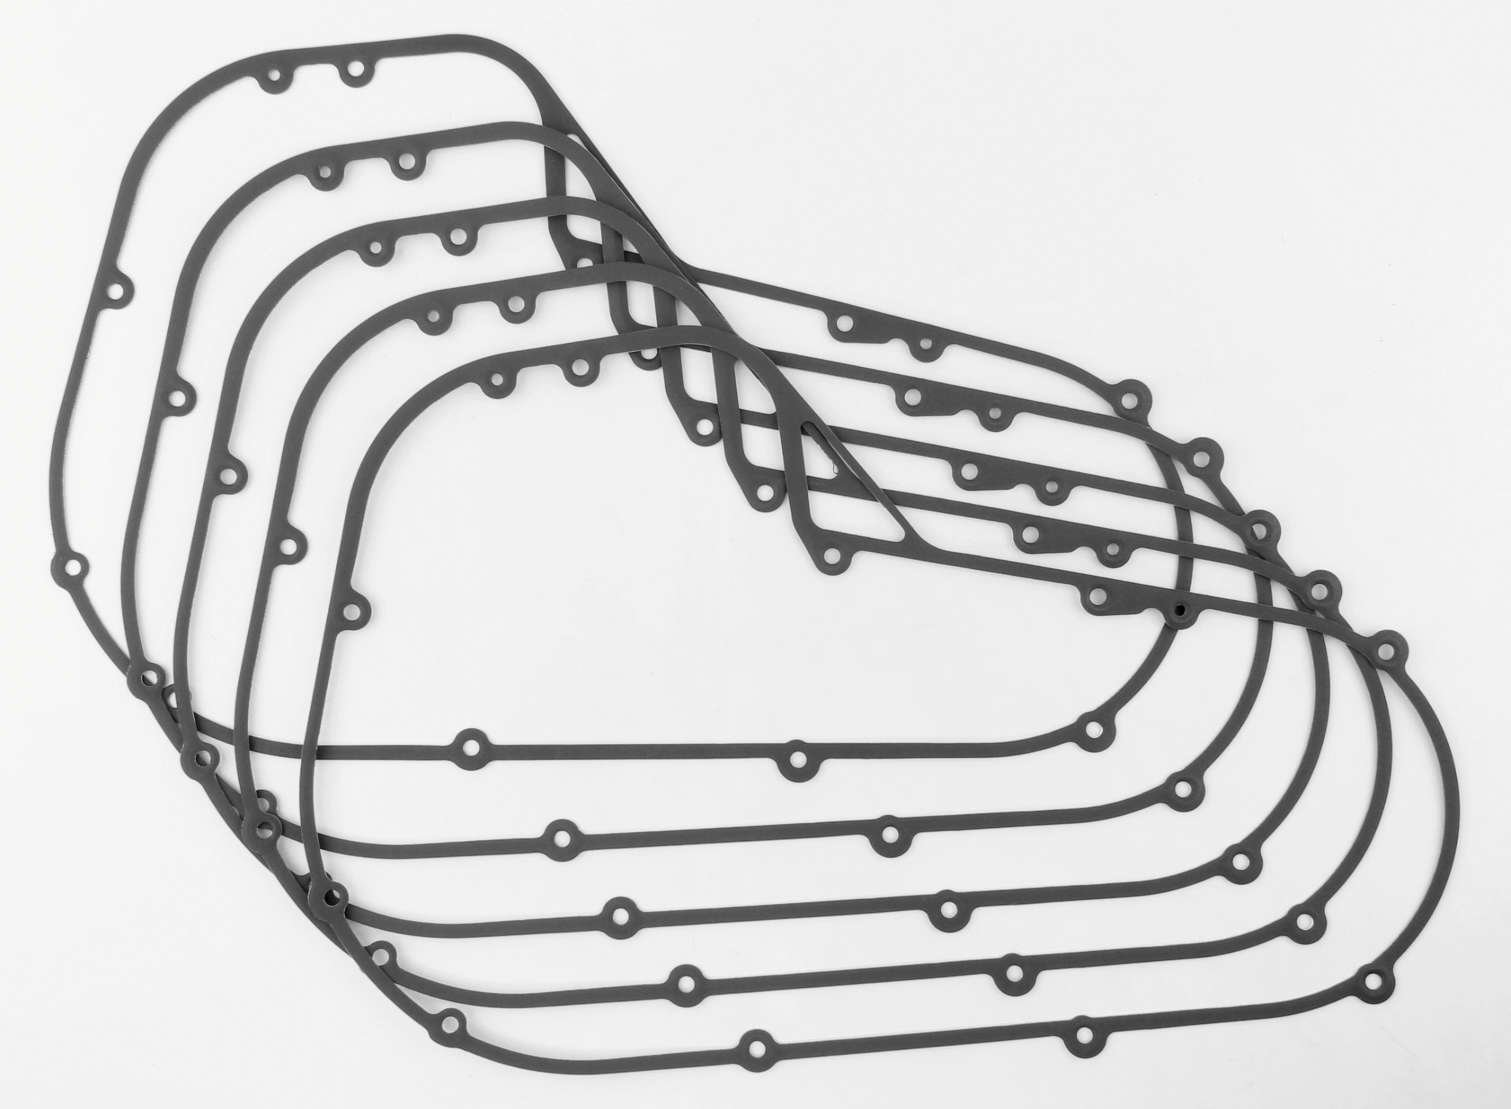 Twin Power Primary Gasket - 5pk. C9307F5TP